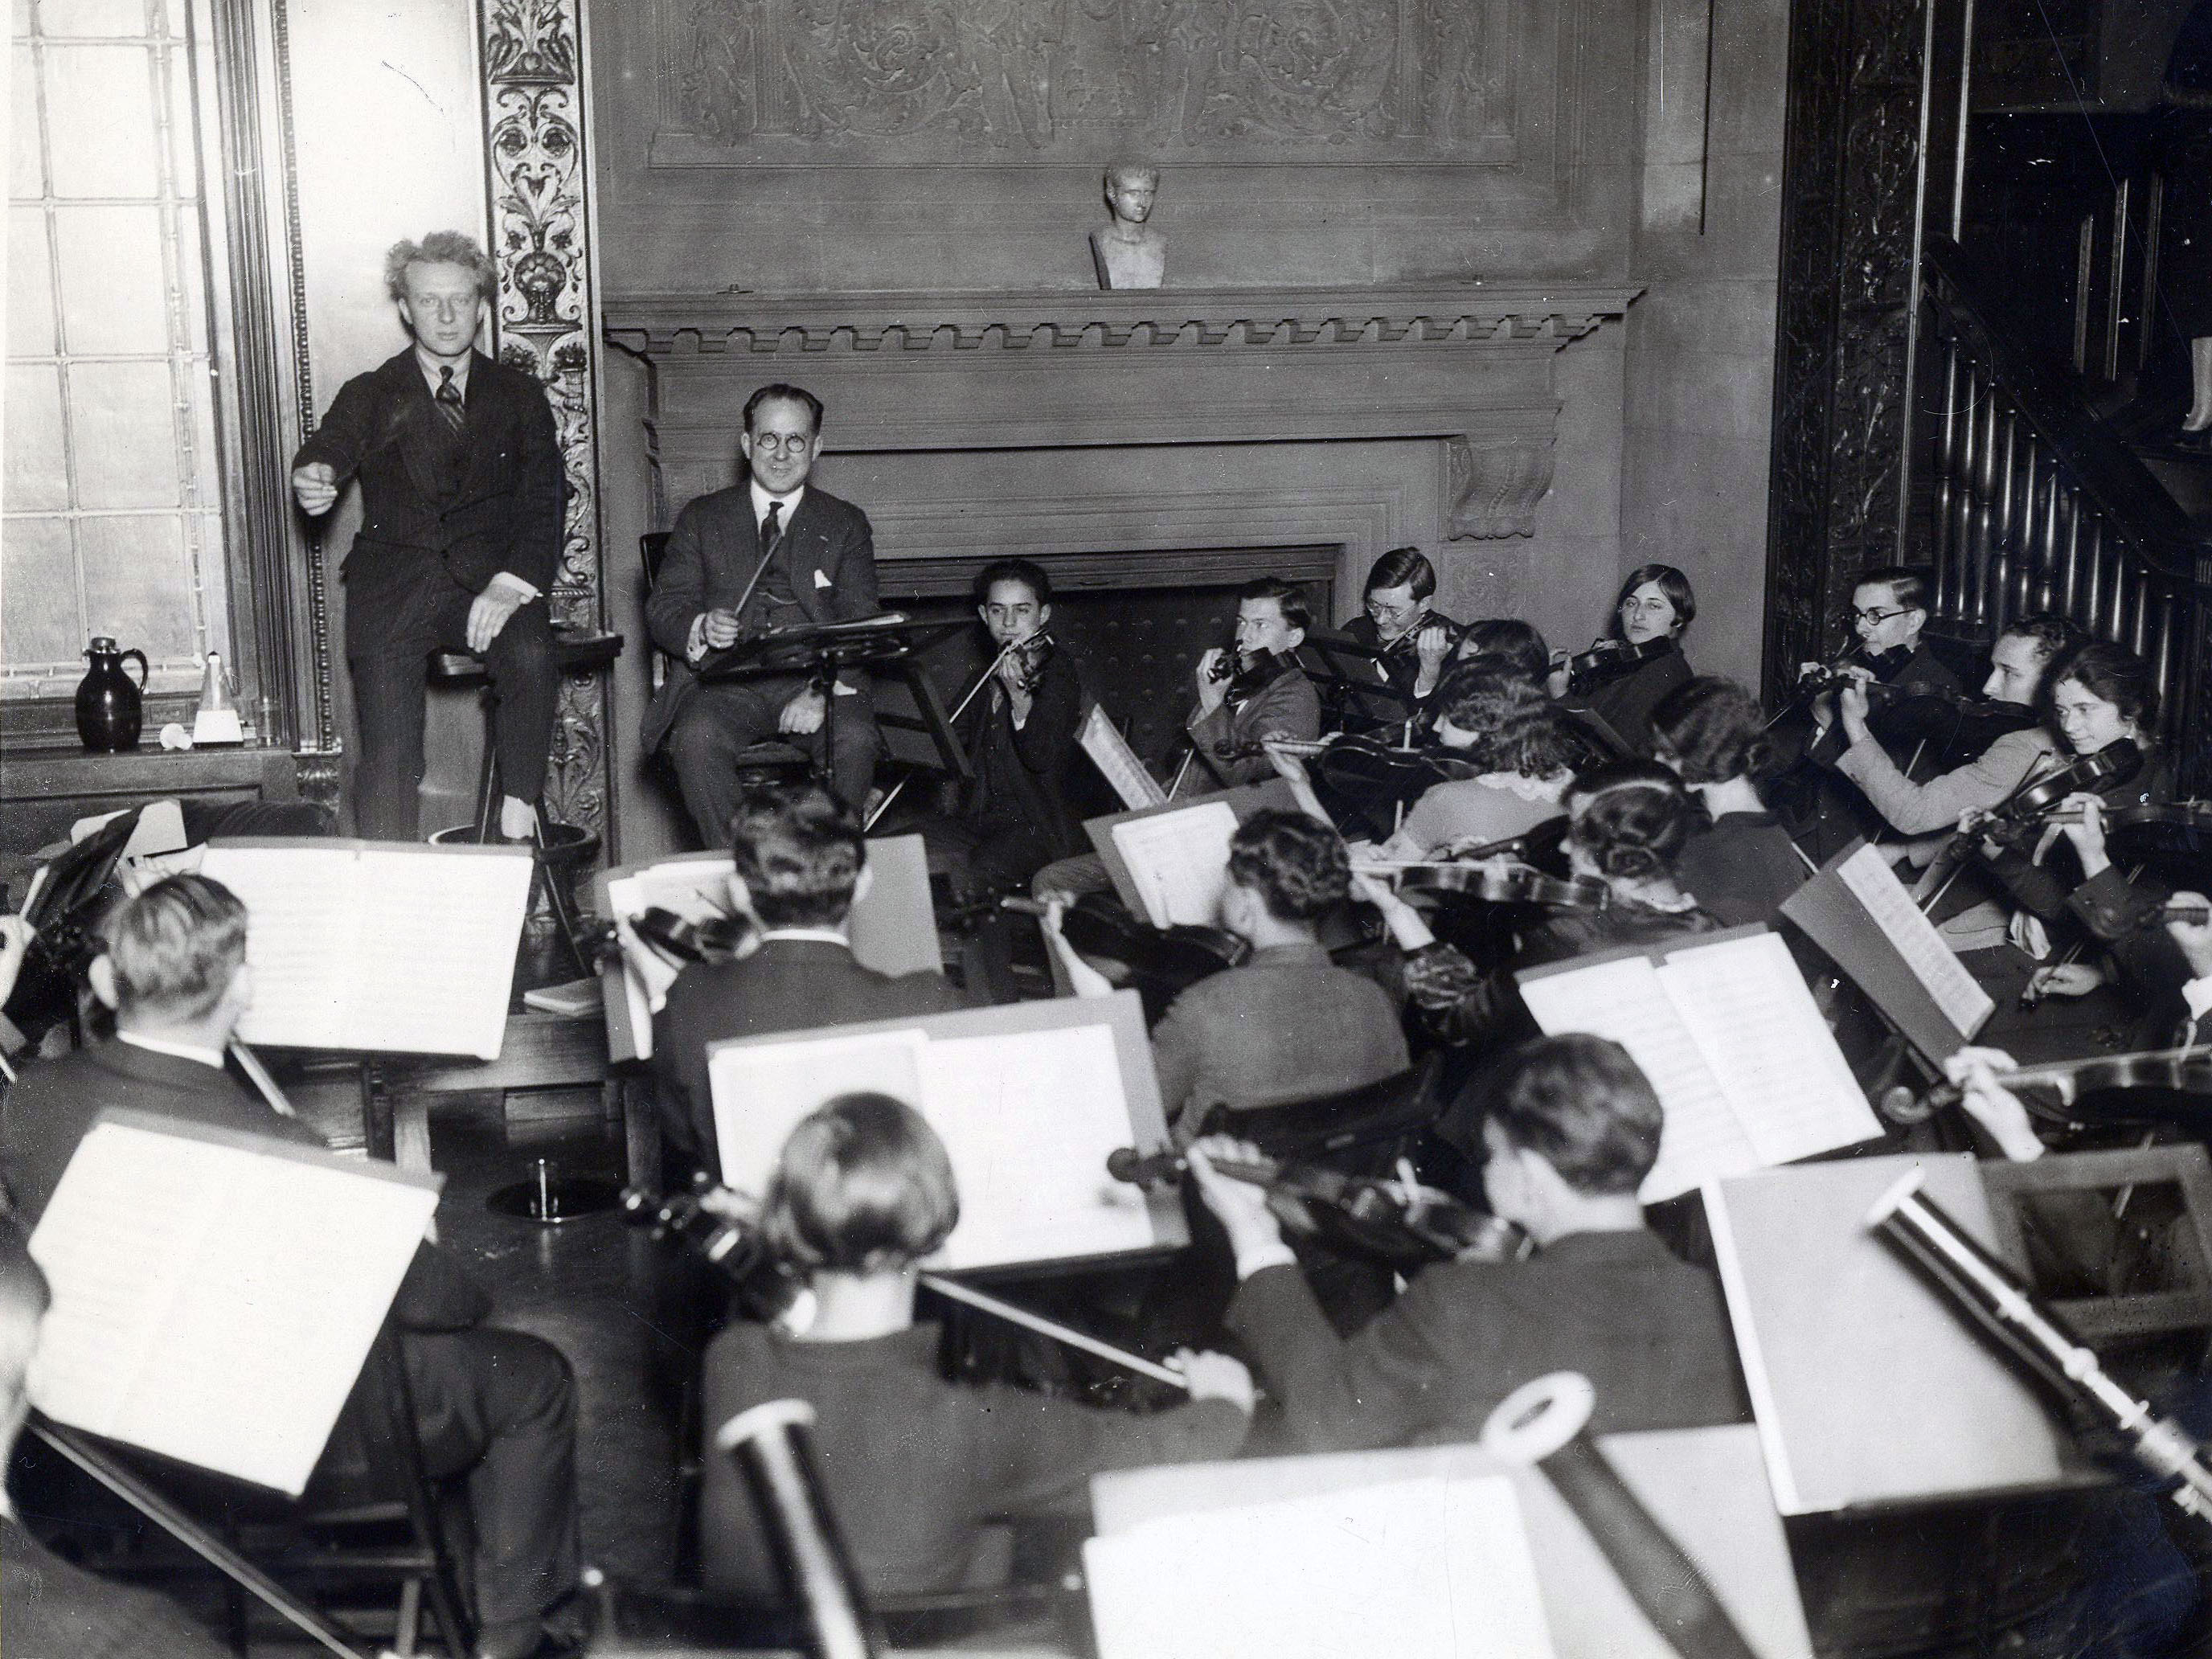 Leopold Stokowski rehearses Curtis students in the Common Room, 1925